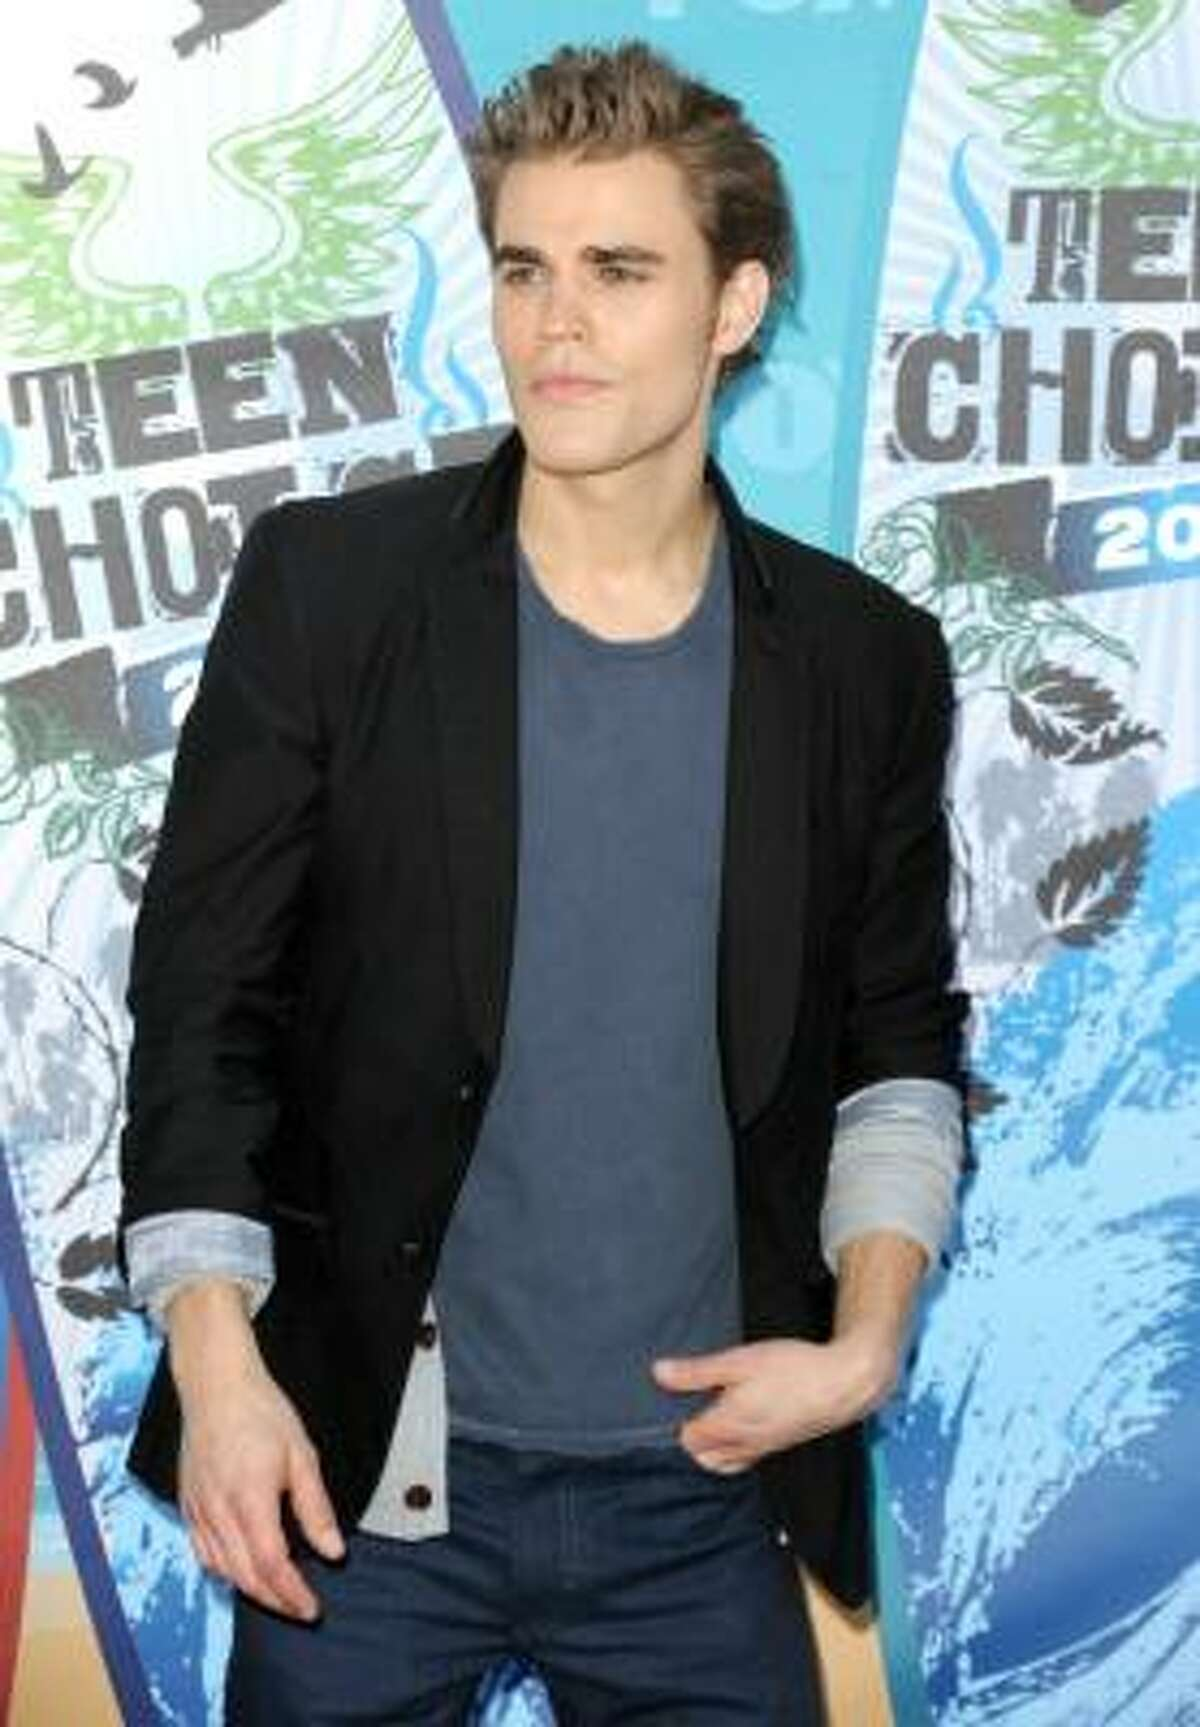 48. Paul Wesley, The Vampire Diaries